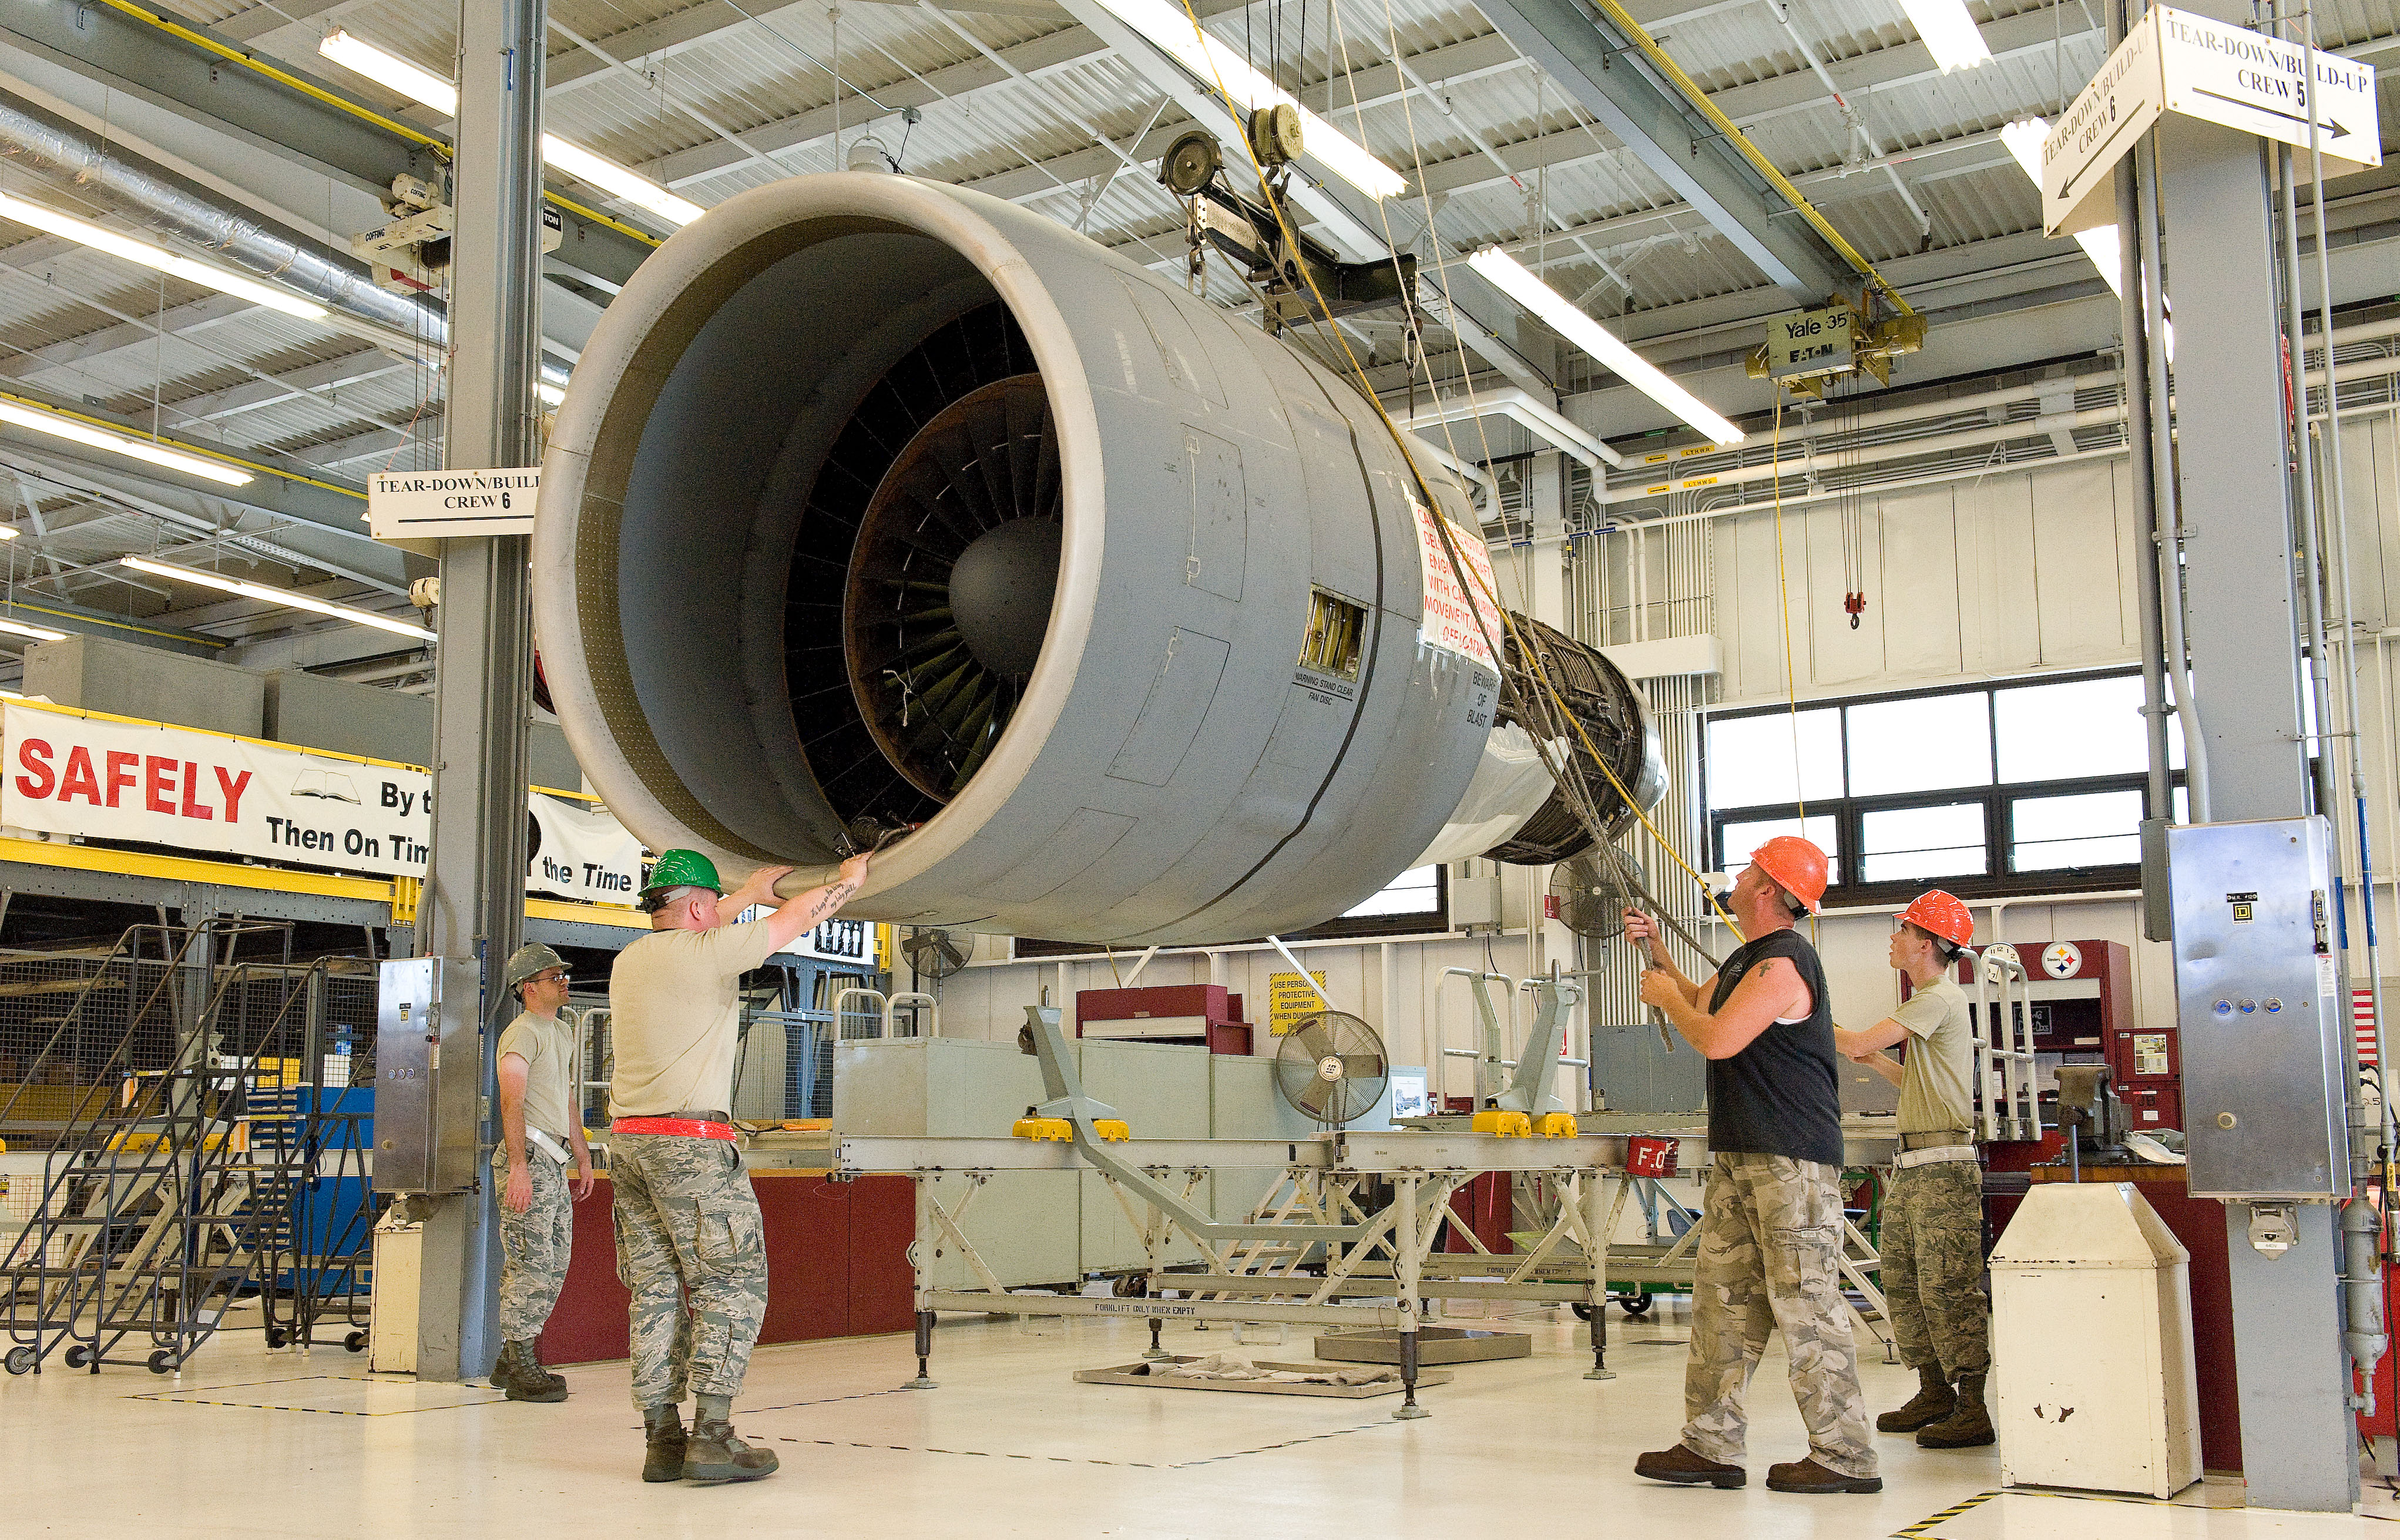 An era of Dover built TF39 engines throttles down Air Mobility